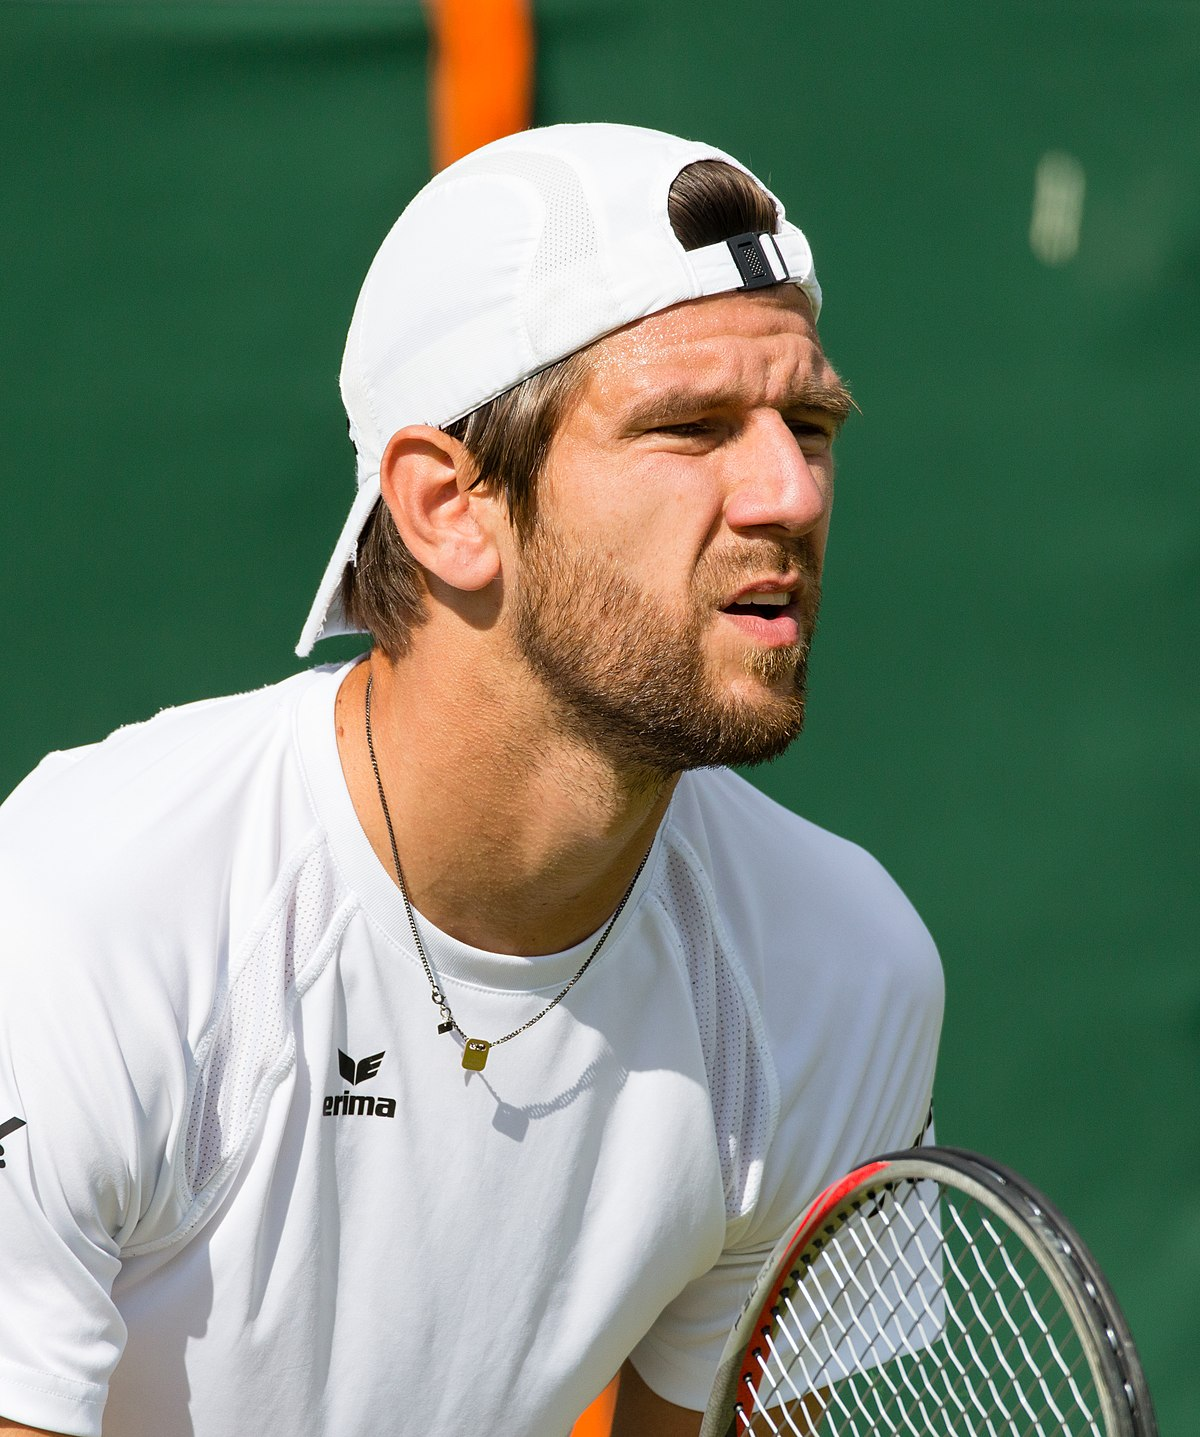 1200x1437 - Jurgen Melzer Wallpapers 2